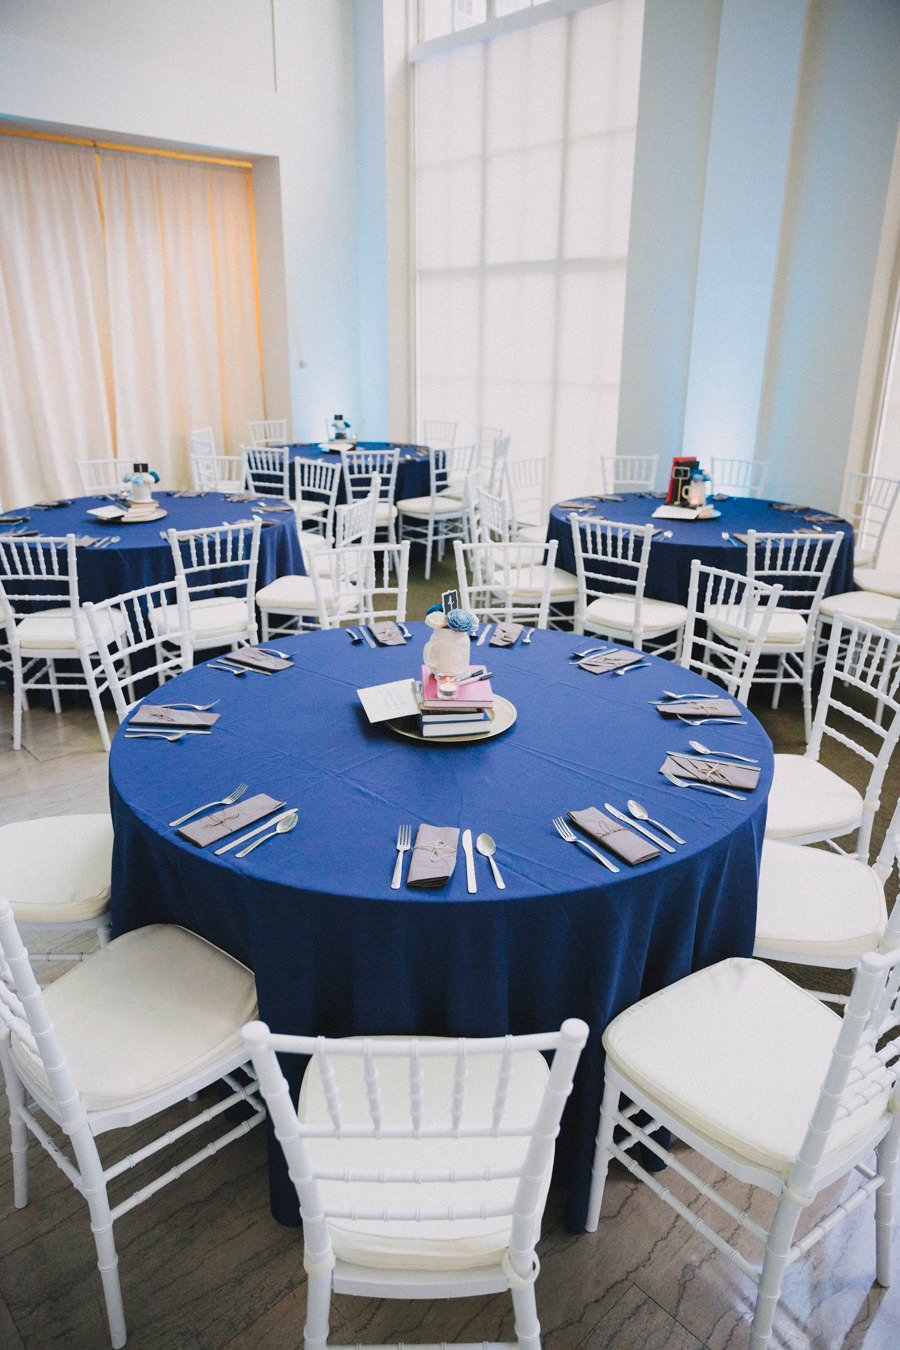 Modern Wedding Reception Round Table Decor with White Chiavari Chairs, Gray Napkins, Blue Linen, and Creative Books and Guestbook with Pens Centerpiece